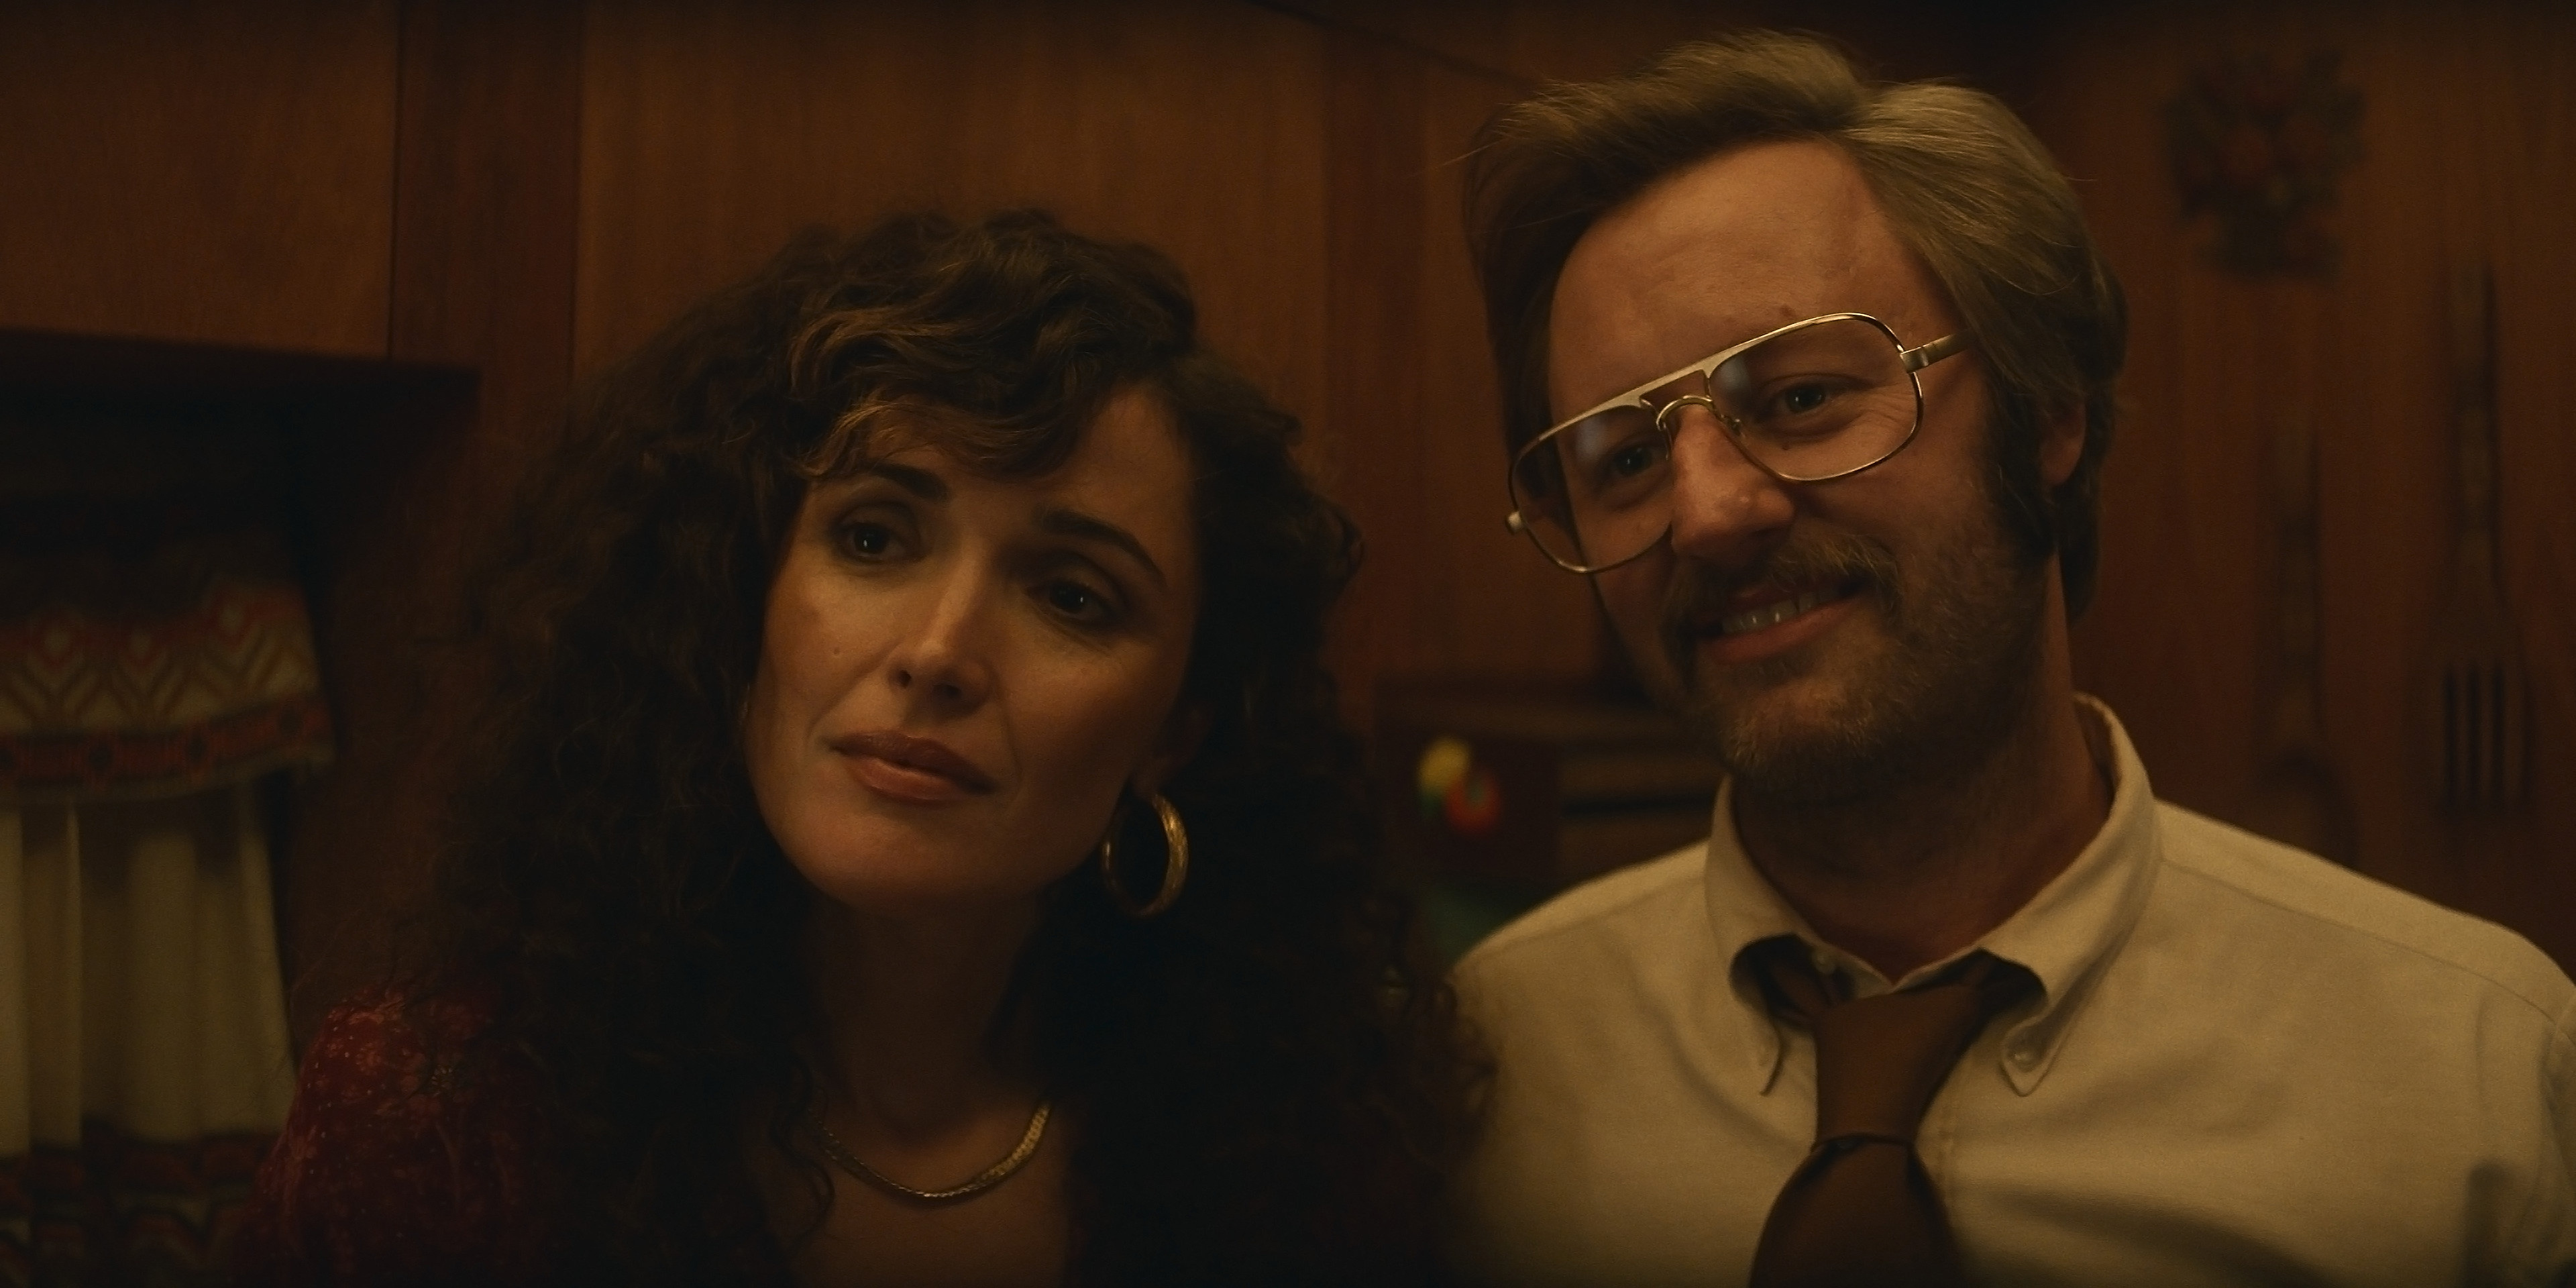 Rose Byrne and Rory Scovel in 'Physical'